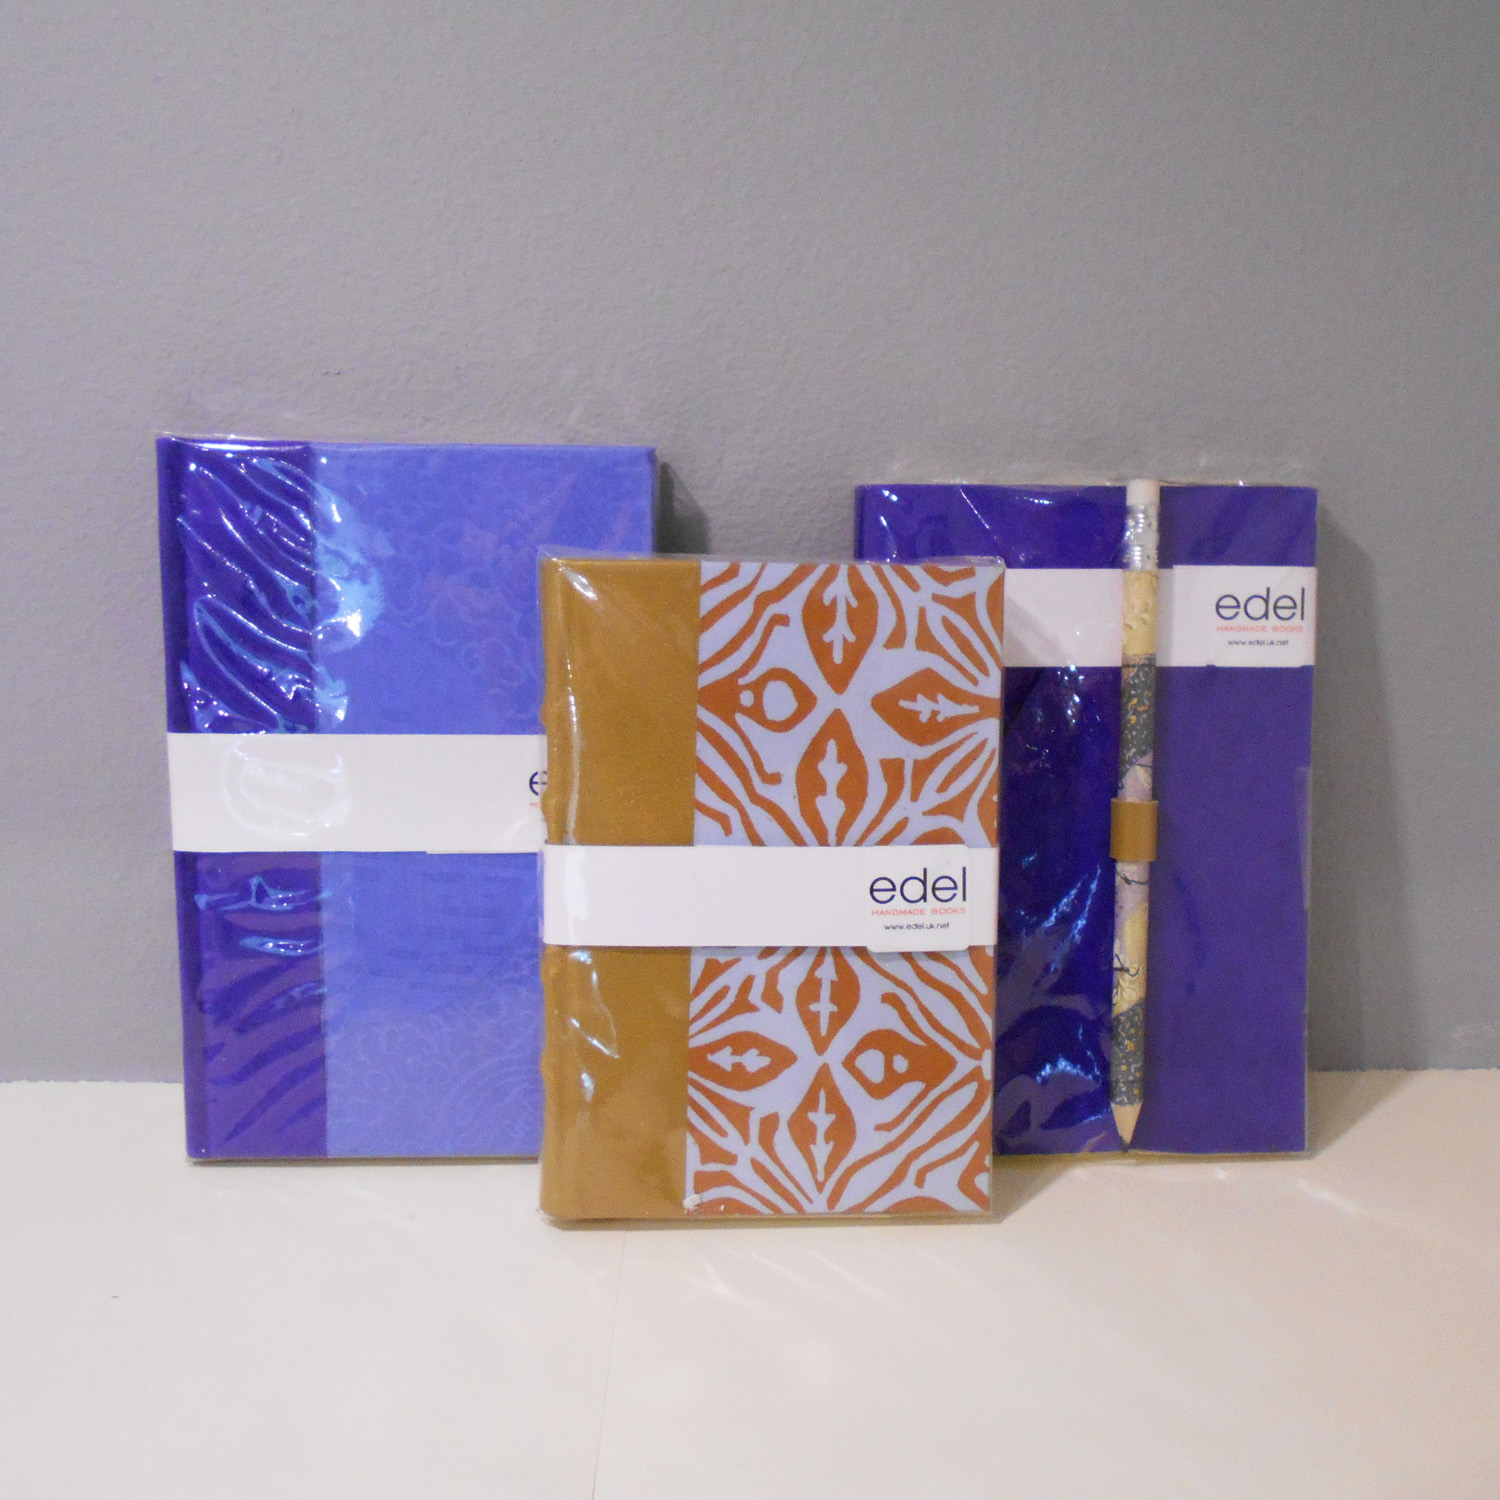 Edel Hopkin   Handmade Books  paper and leather  £25 each